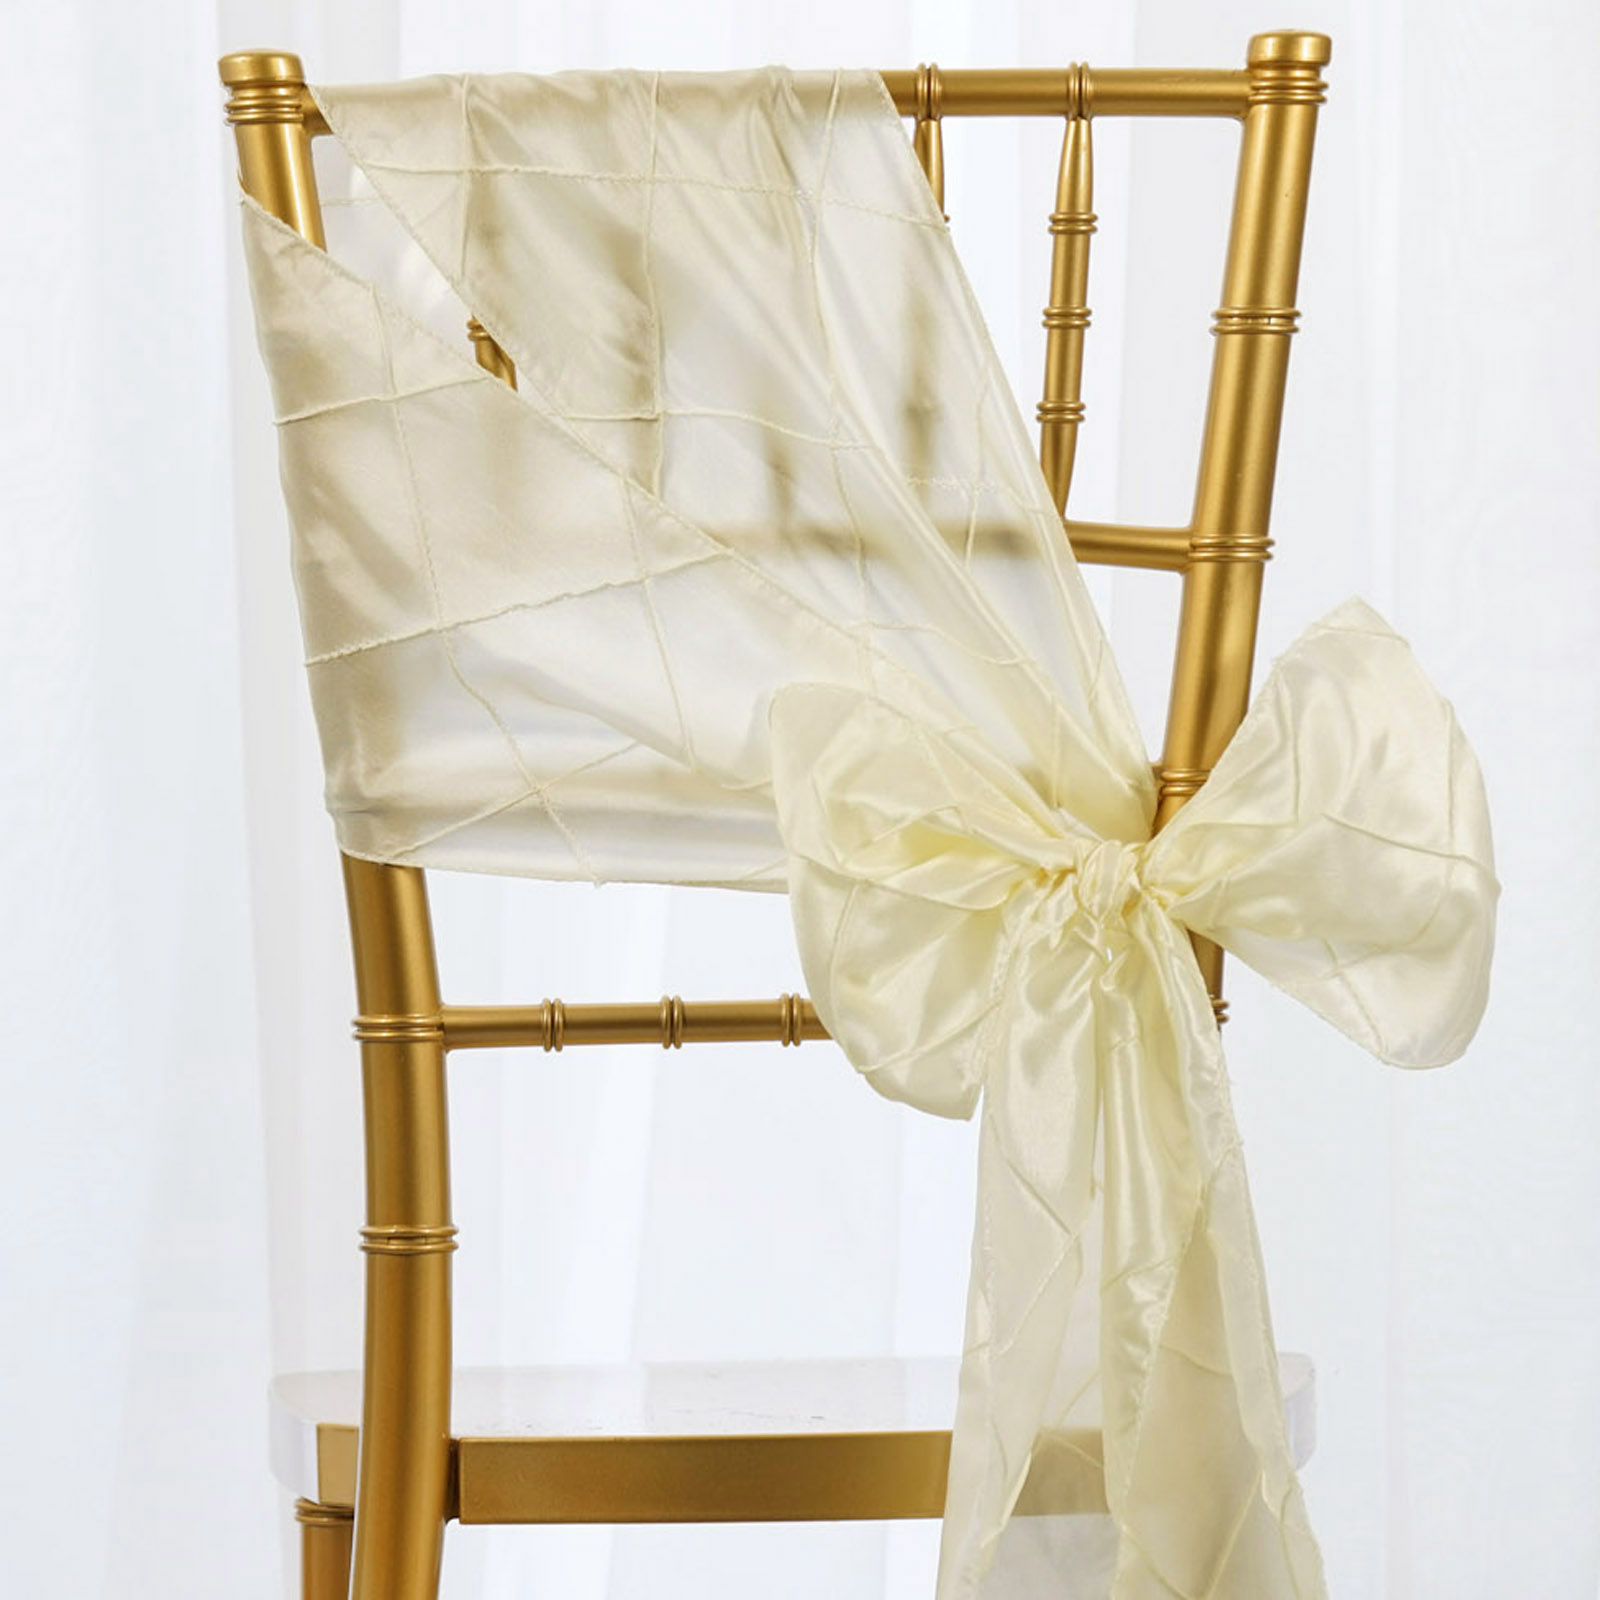 wedding chair covers with bows rental in chennai pintuck sashes ties banquet reception